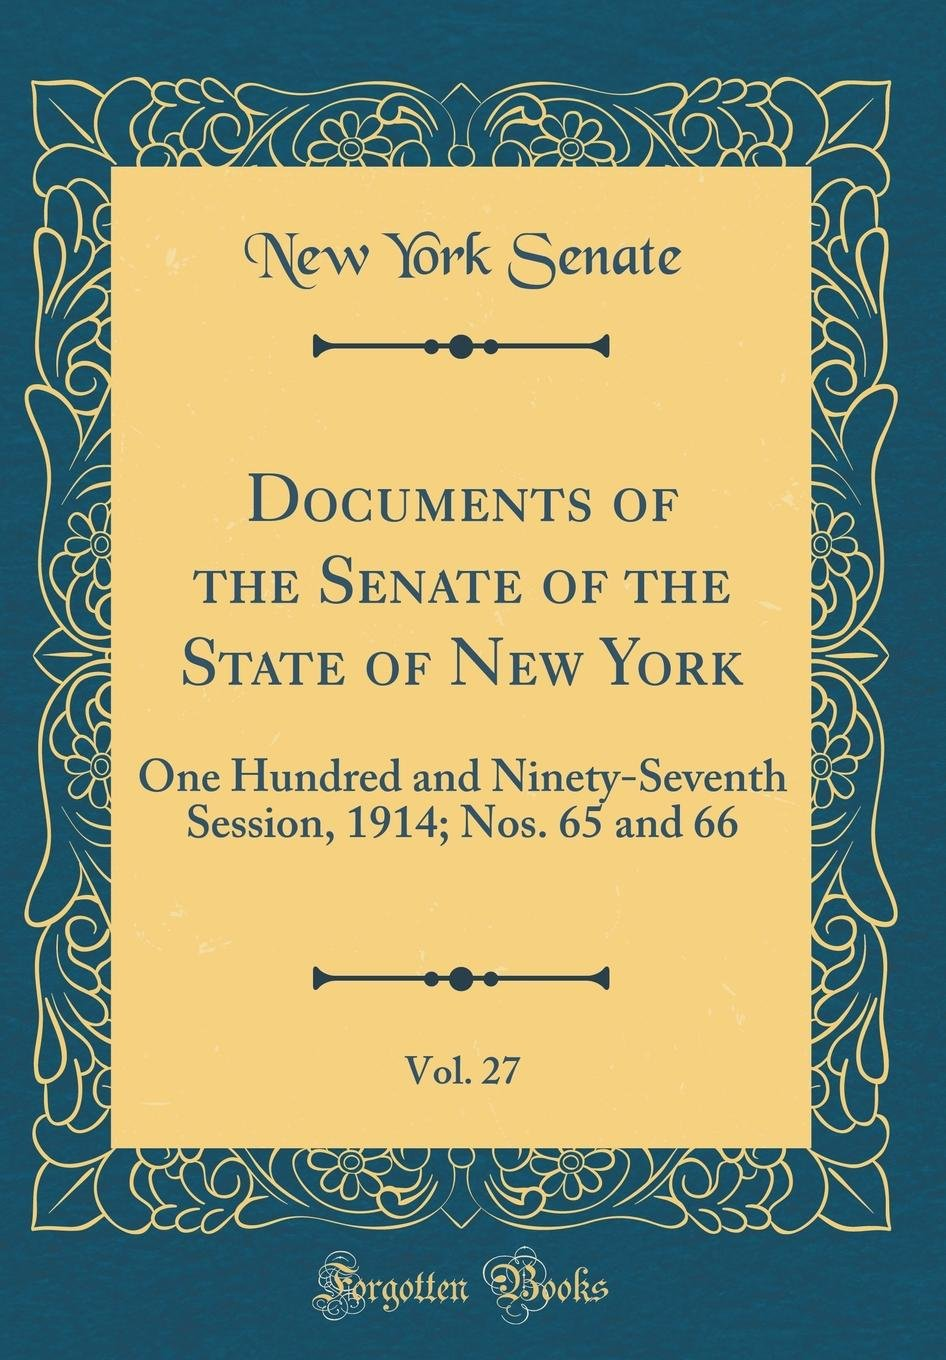 Documents of the Senate of the State of New York, Vol. 27: One Hundred and Ninety-Seventh Session, 1914; Nos. 65 and 66 (Classic Reprint) pdf